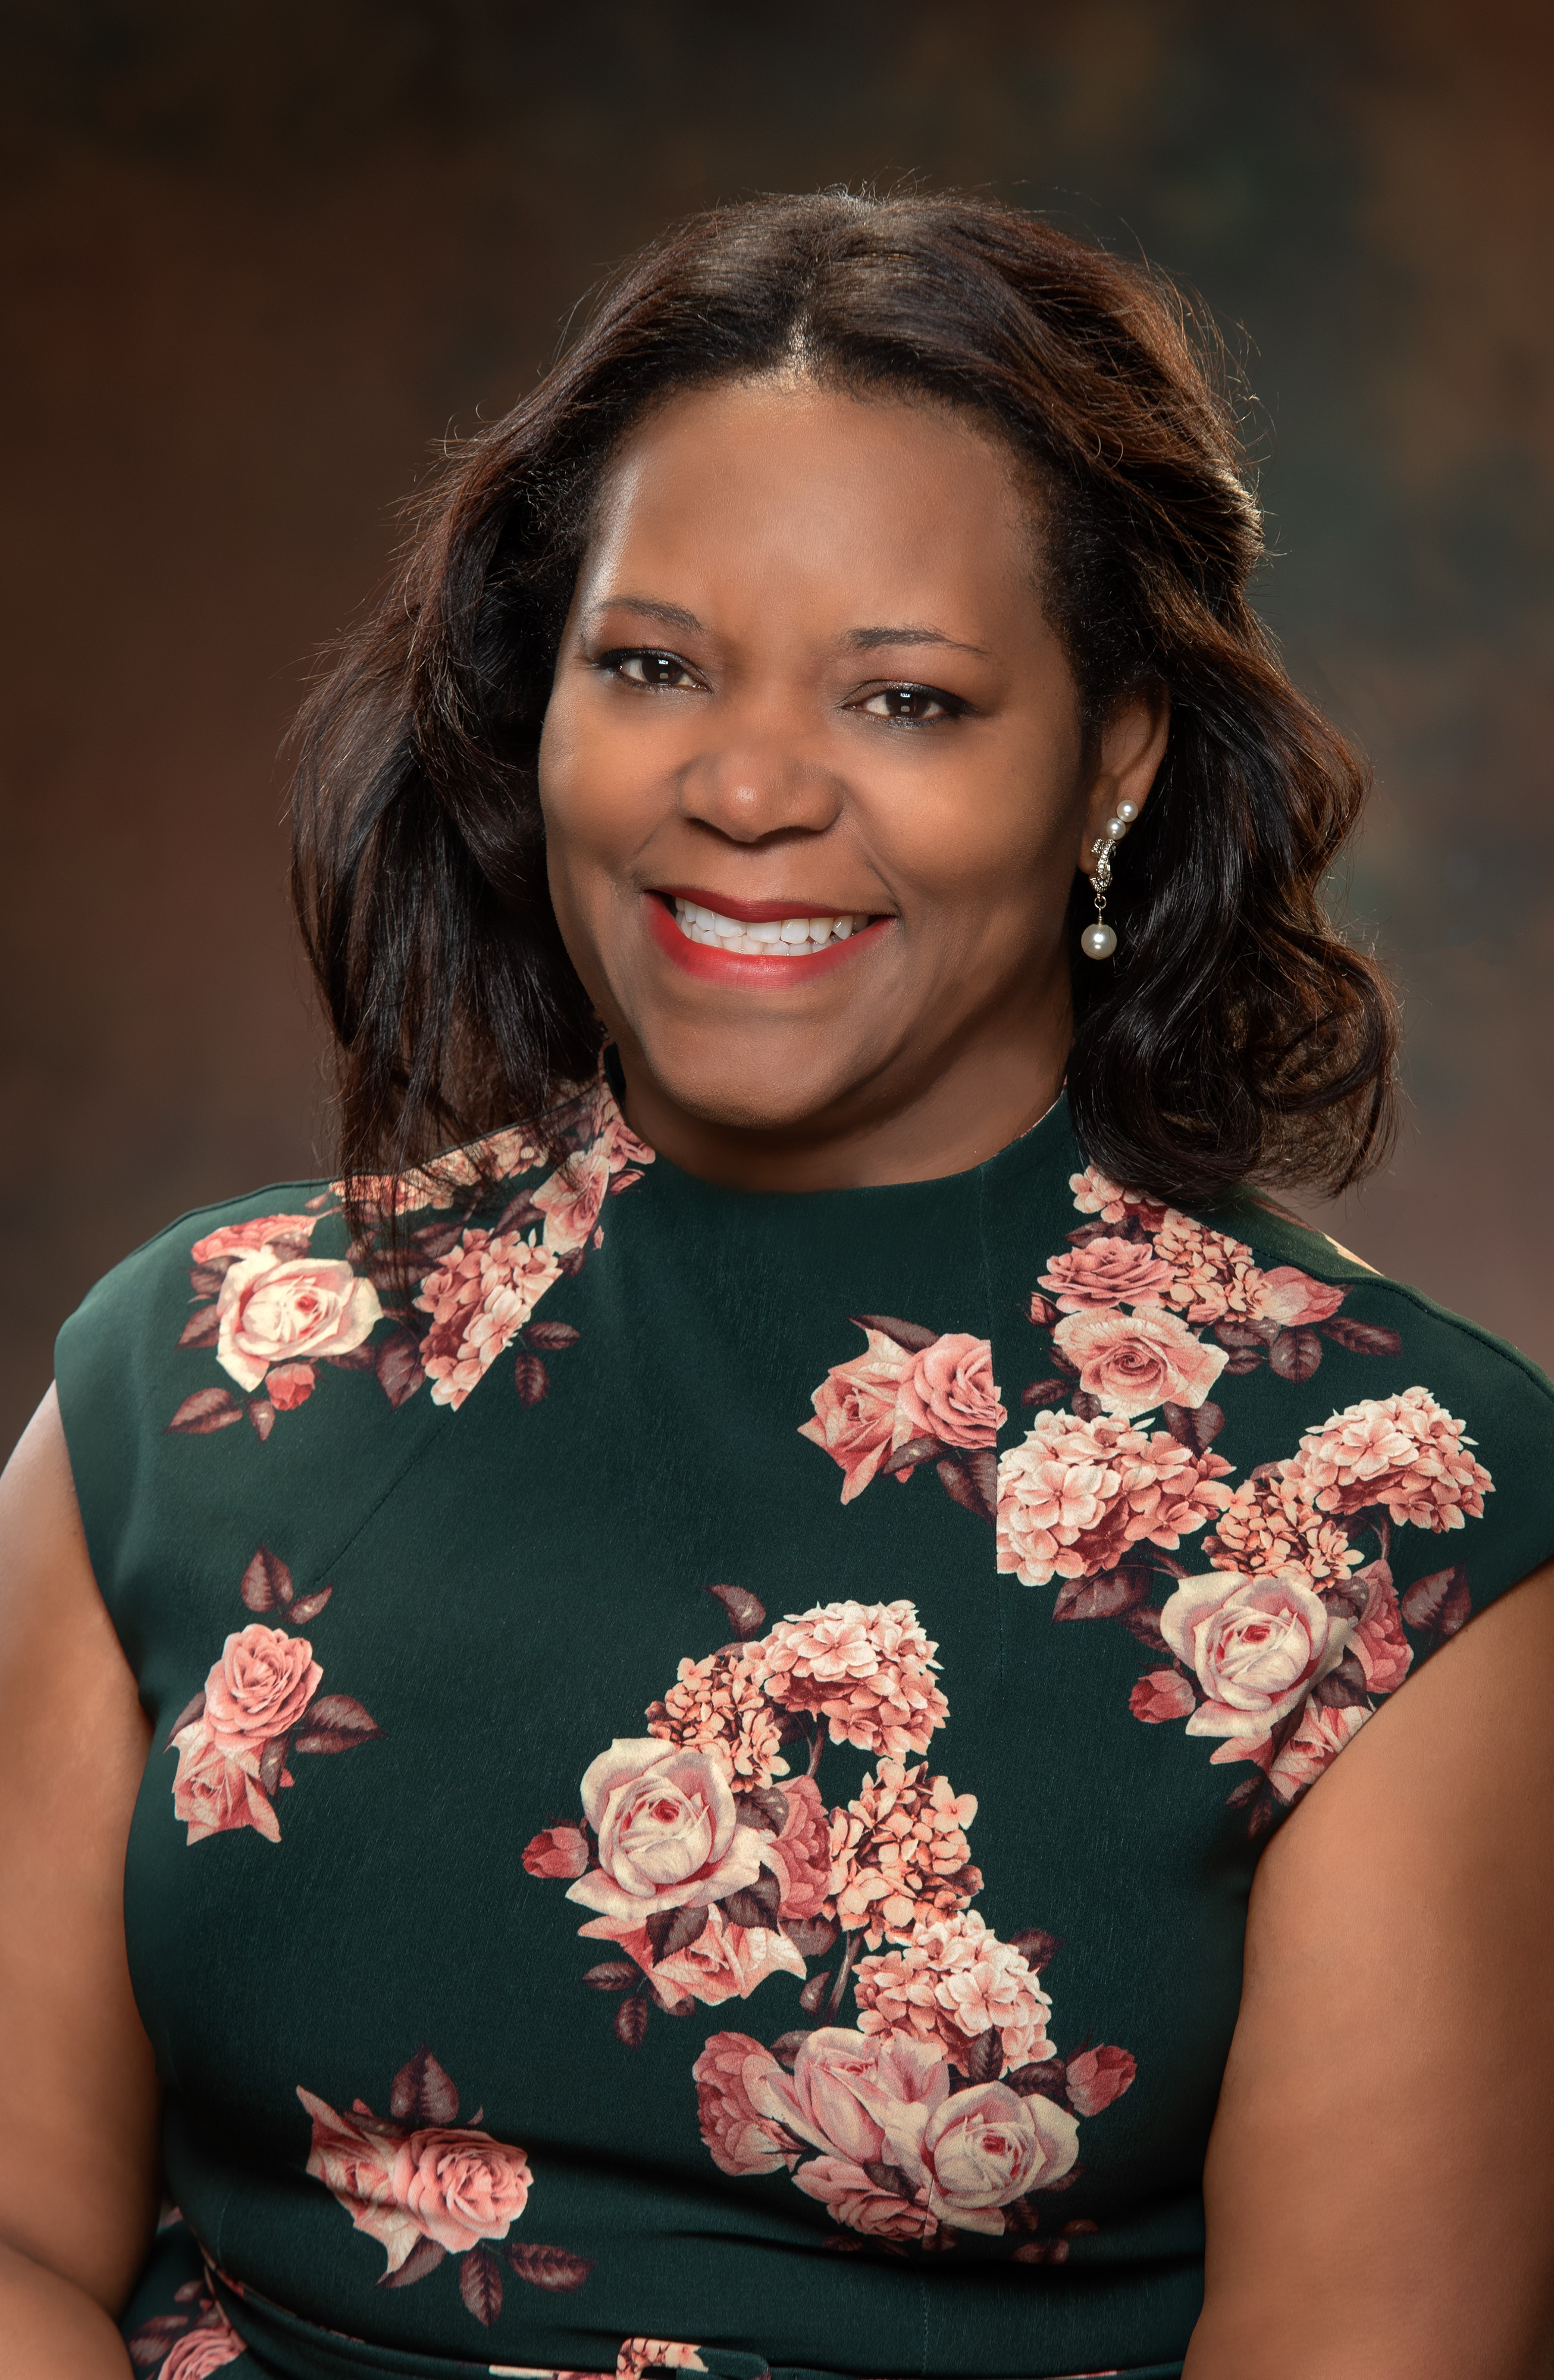 Consuelo H. Wilkins, MD, MSCI, headshot. Vice President for Health Equity, Vanderbilt University Medical Center, and Professor of Medicine and Associate Dean for Health Equity, Vanderbilt University School of Medicine.